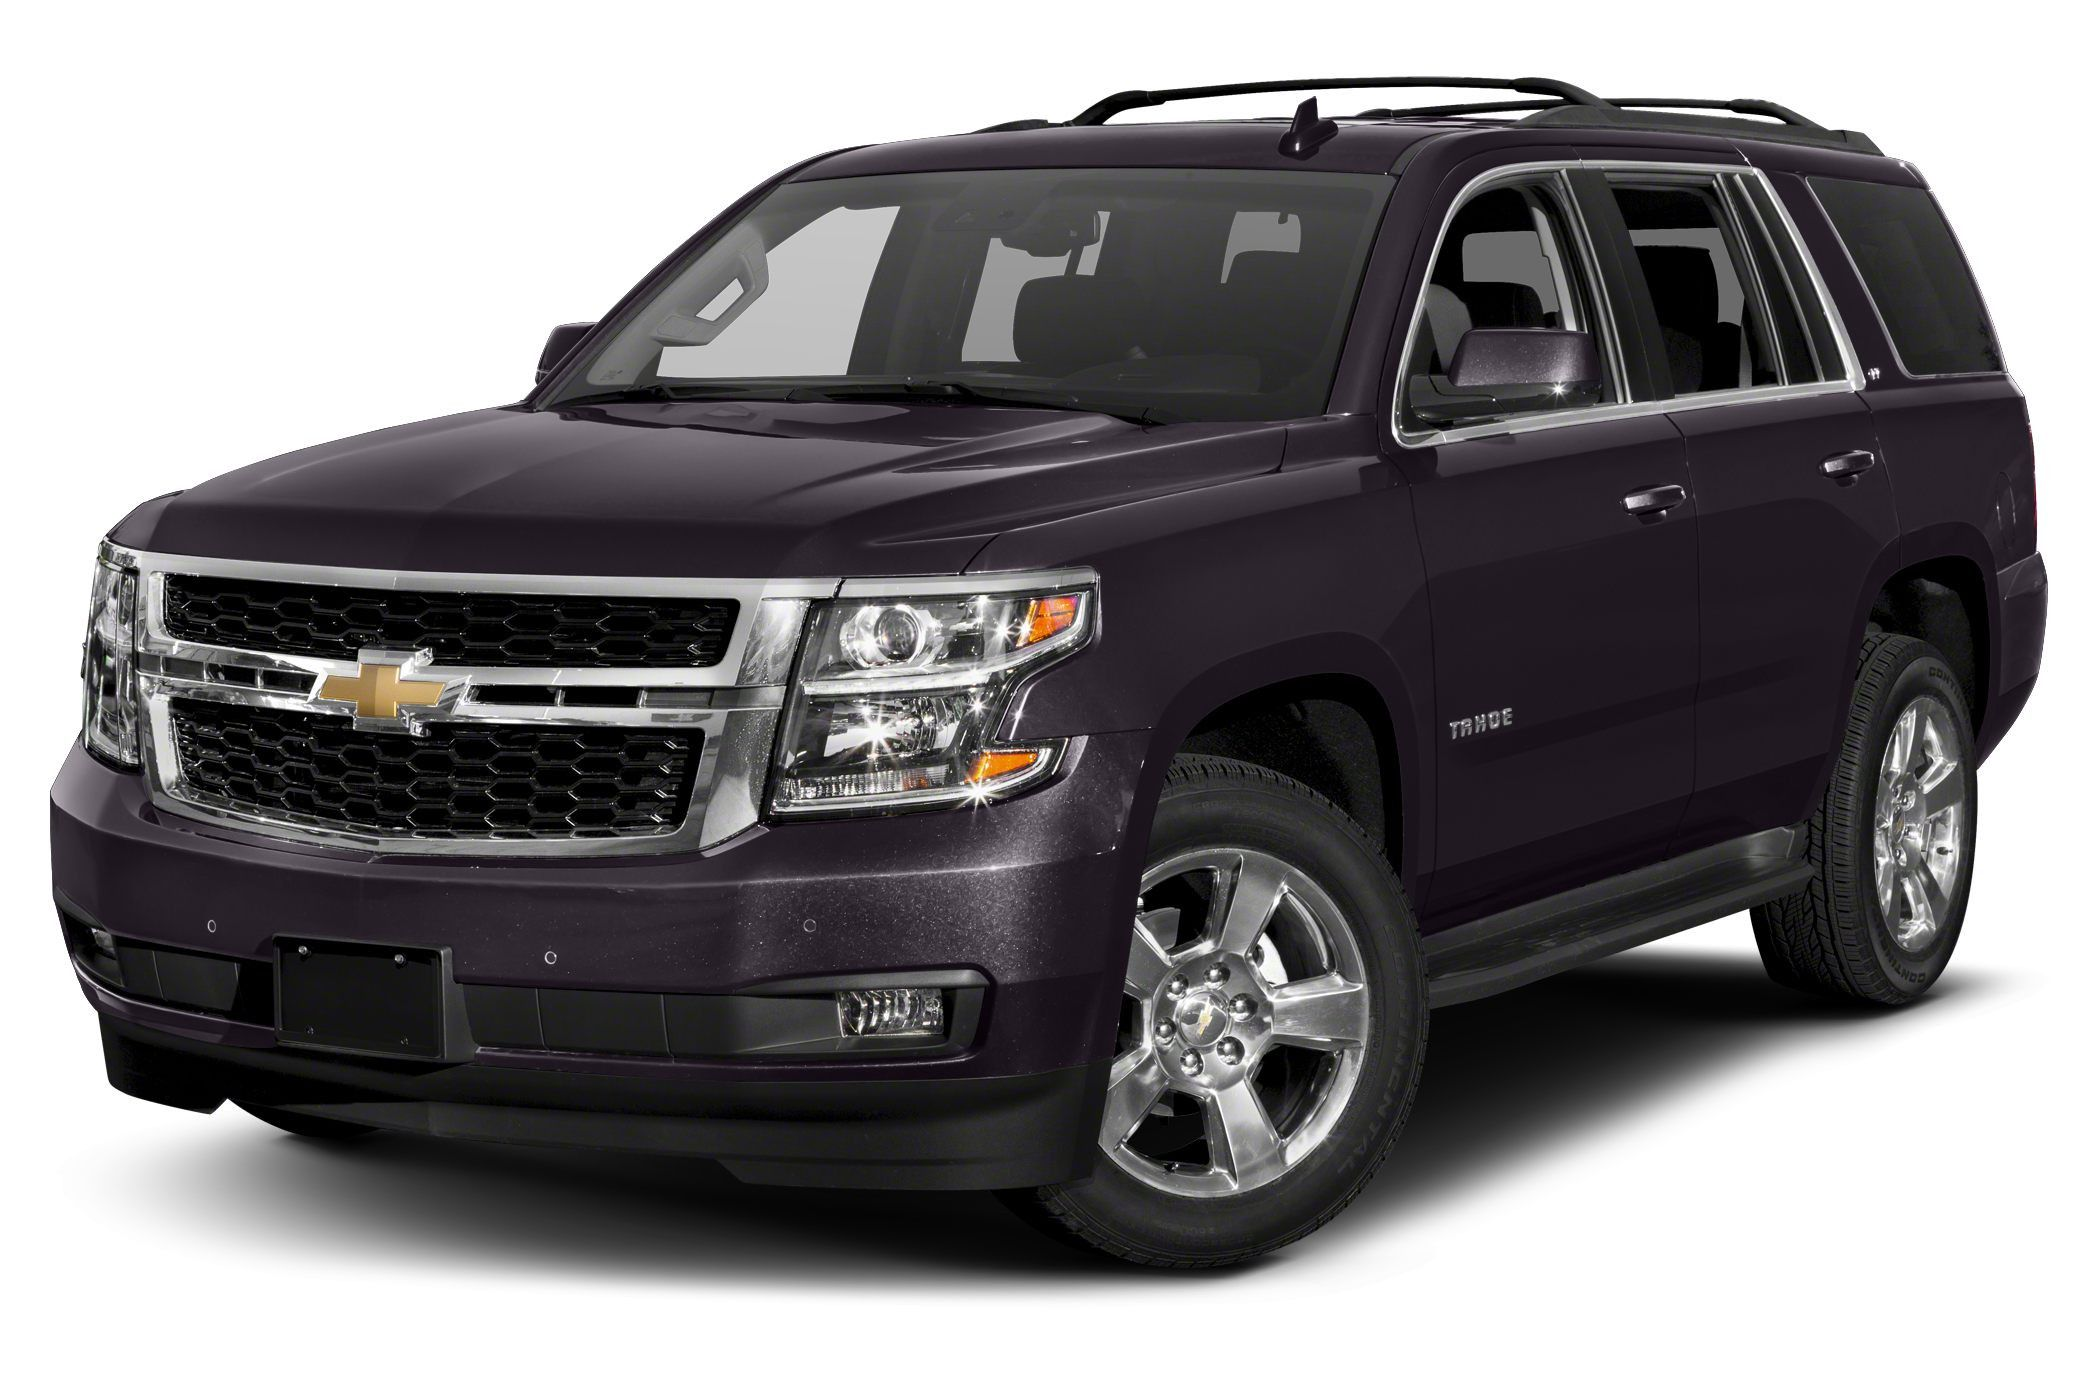 New 2017 Chevy Tahoe Release Date Price Chevy Tahoe Tahoe Chevy